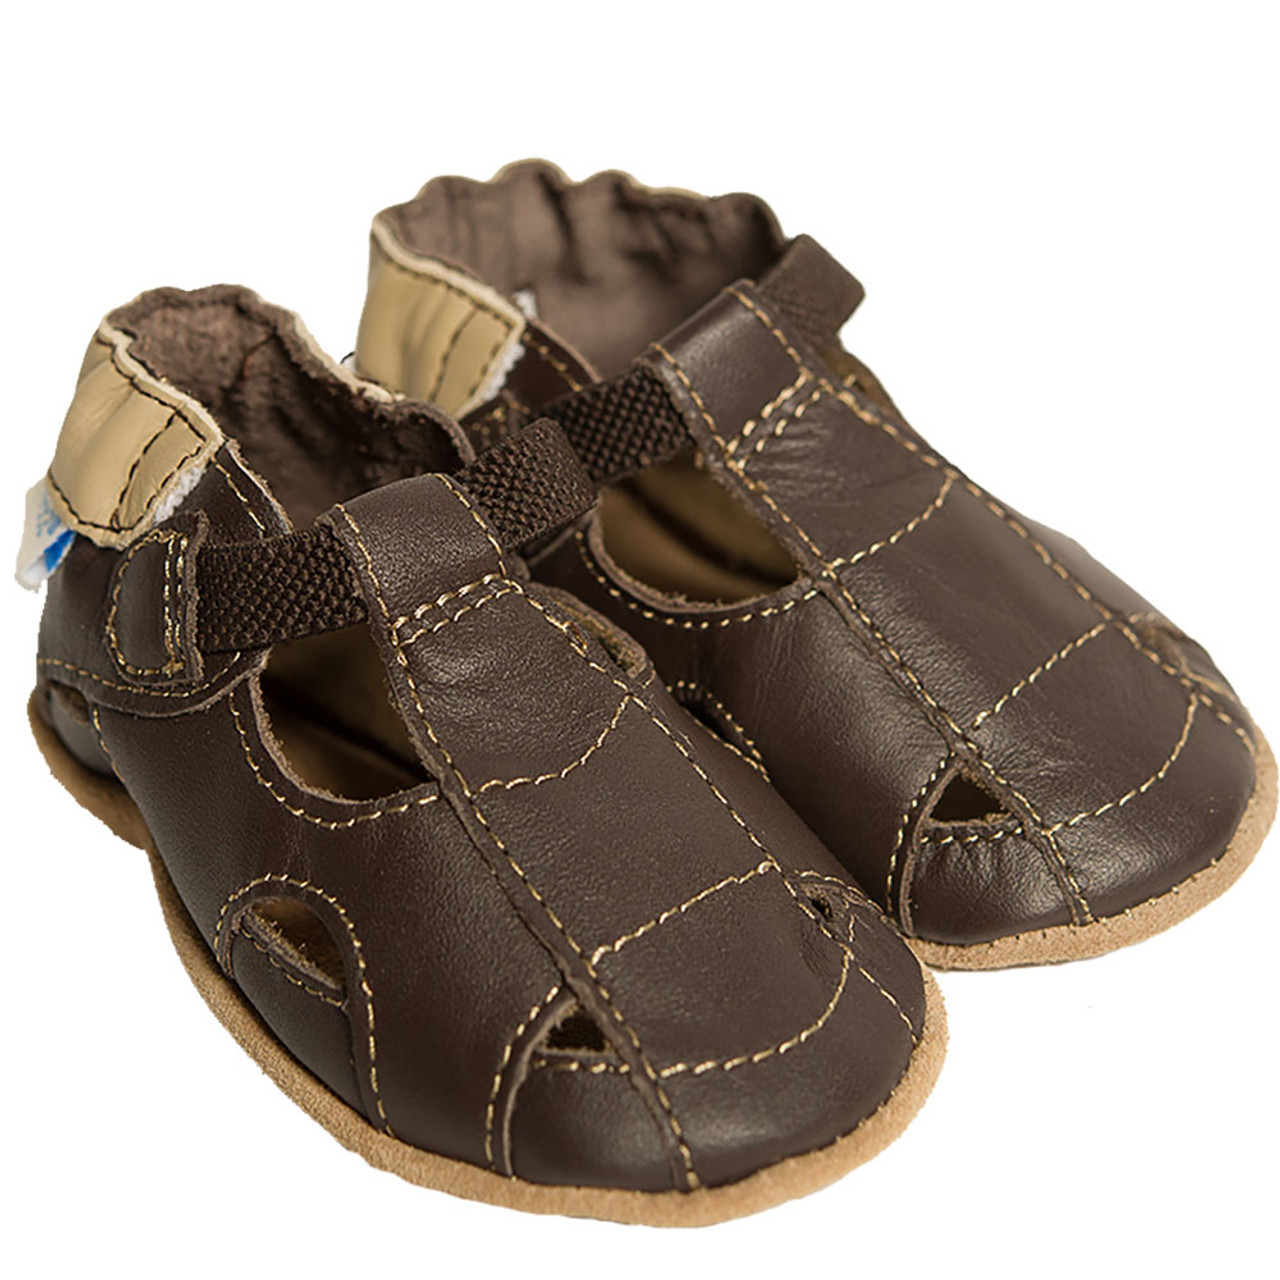 830fb7847ca32 Robeez Fisherman Sandal Brown Soft Soles - Angle